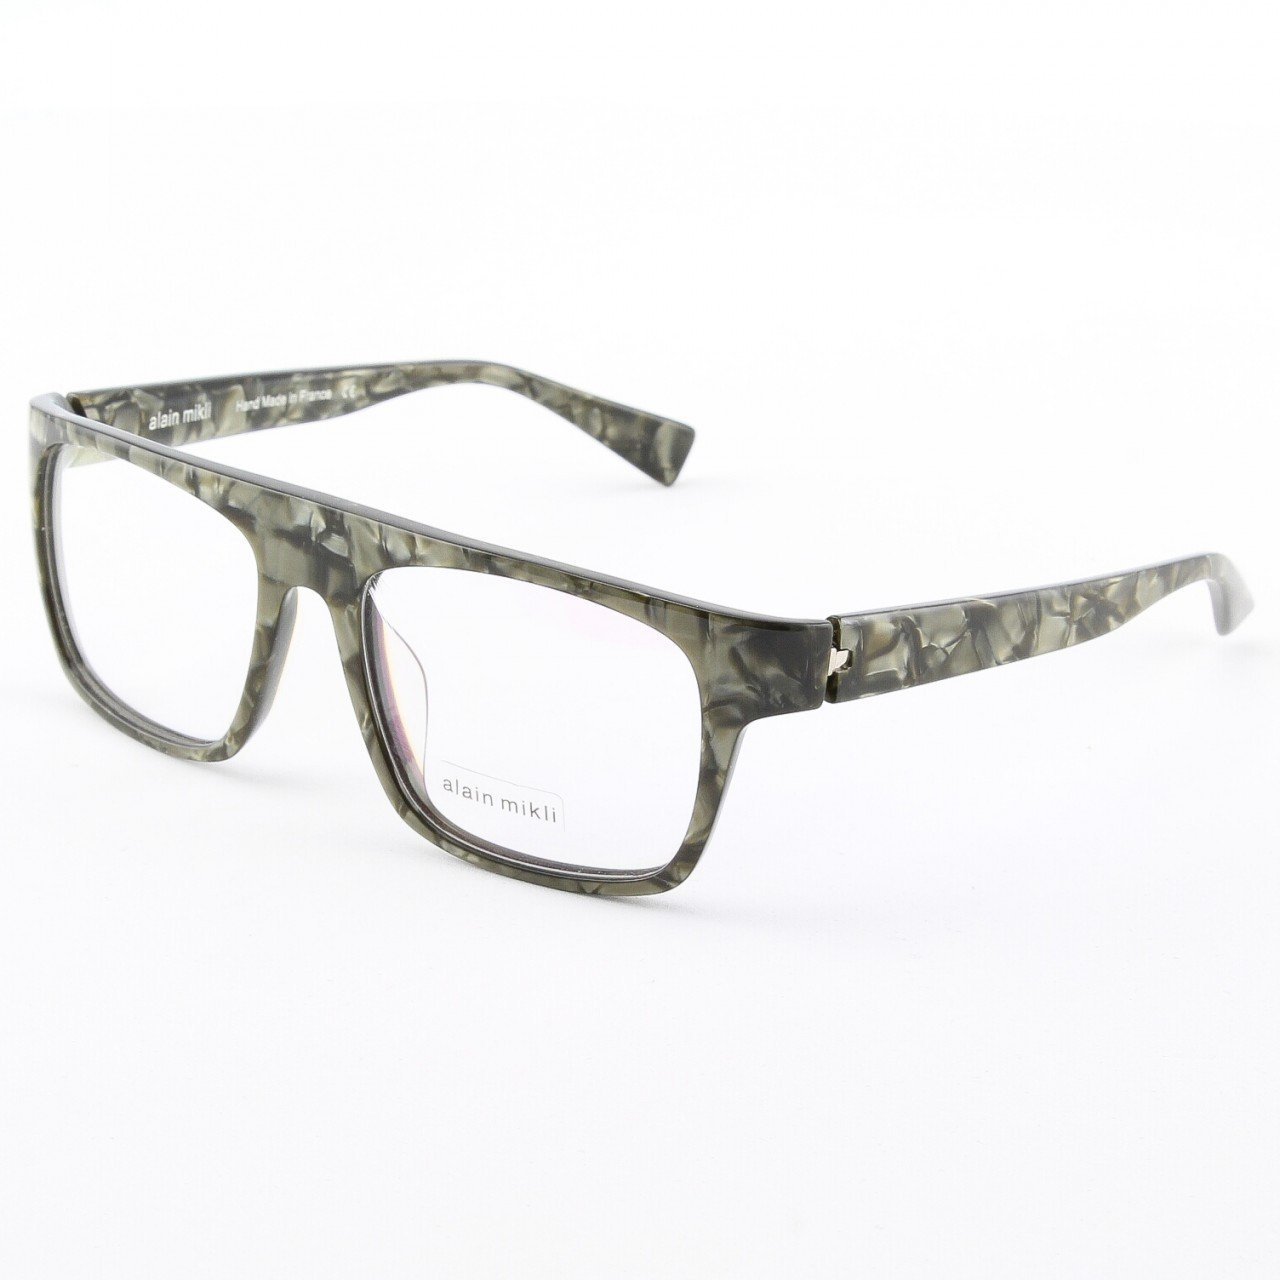 Alain Mikli Eyeglasses AL0756 Col. 11 Pearlized Green and Gold